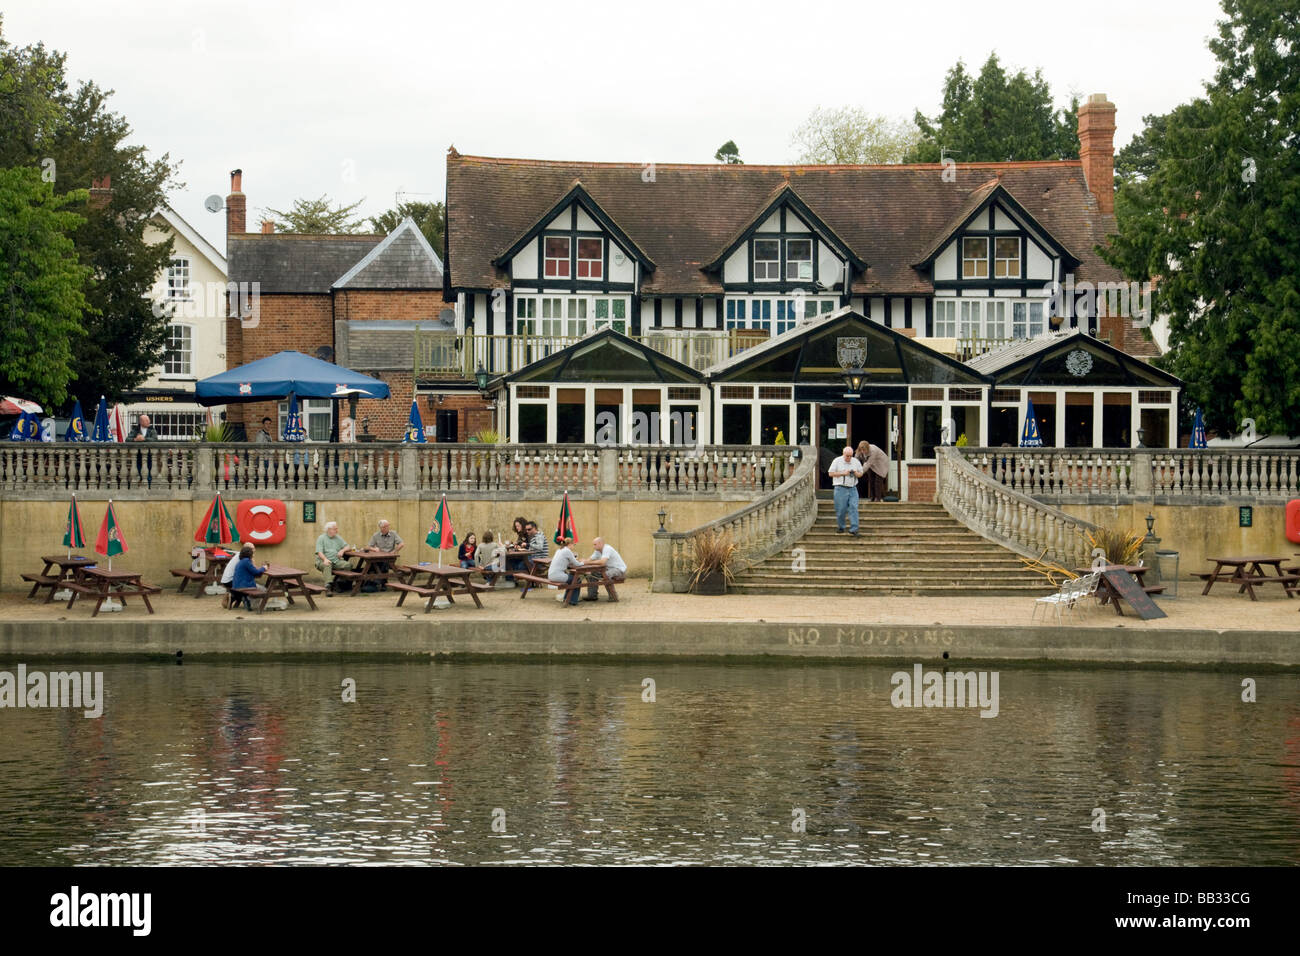 The Boathouse pub on the river Thames at  Wallingford, Oxfordshire, England - Stock Image